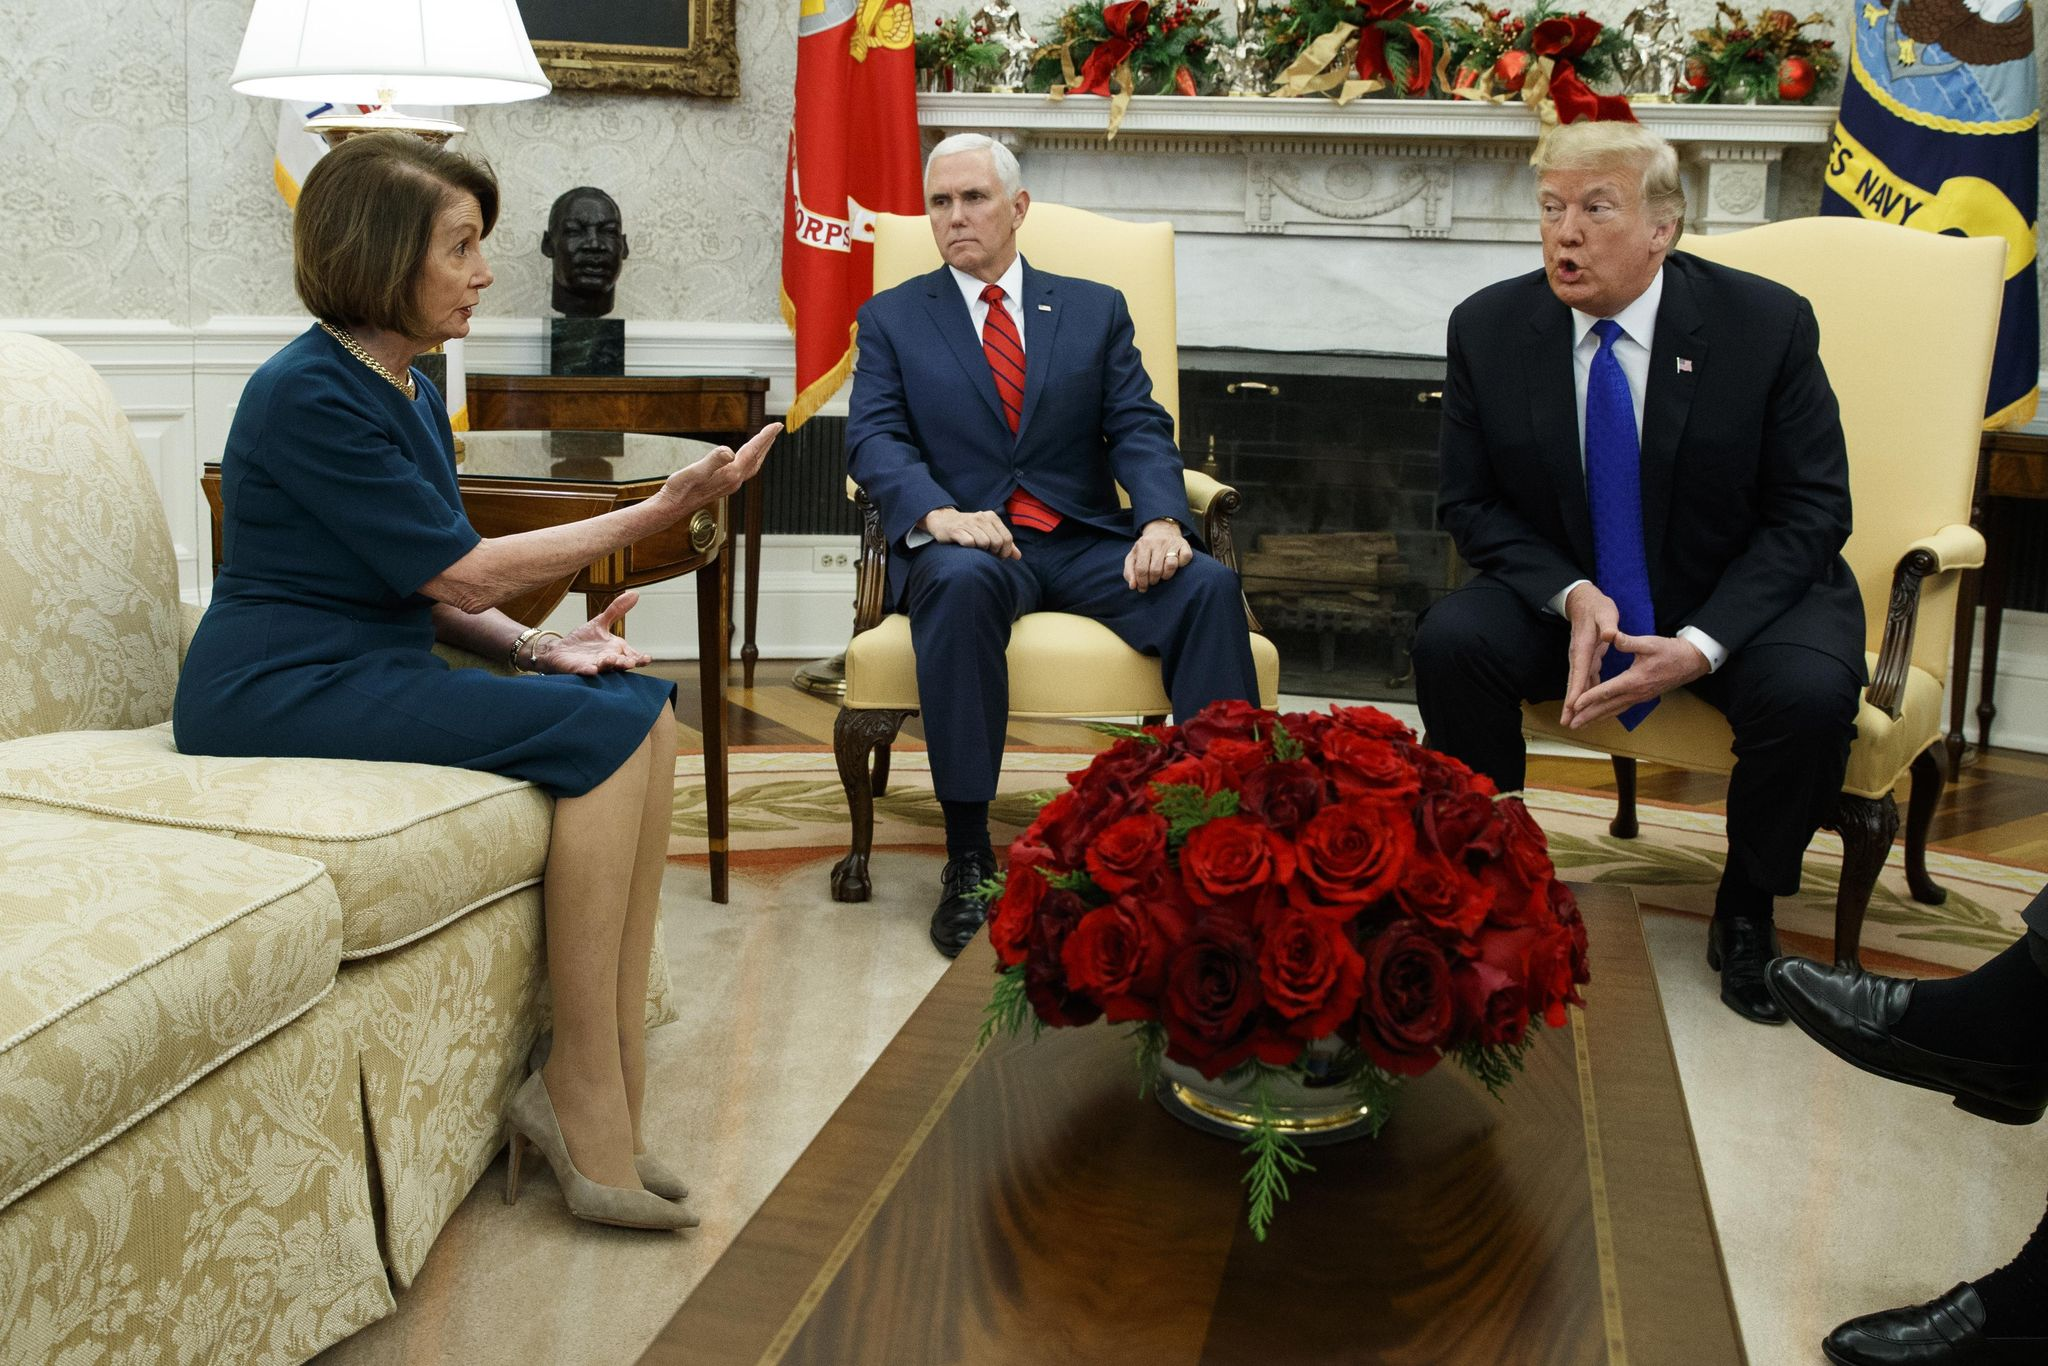 Trump cancels Pelosi's jet to Brussels, blames government shutdown